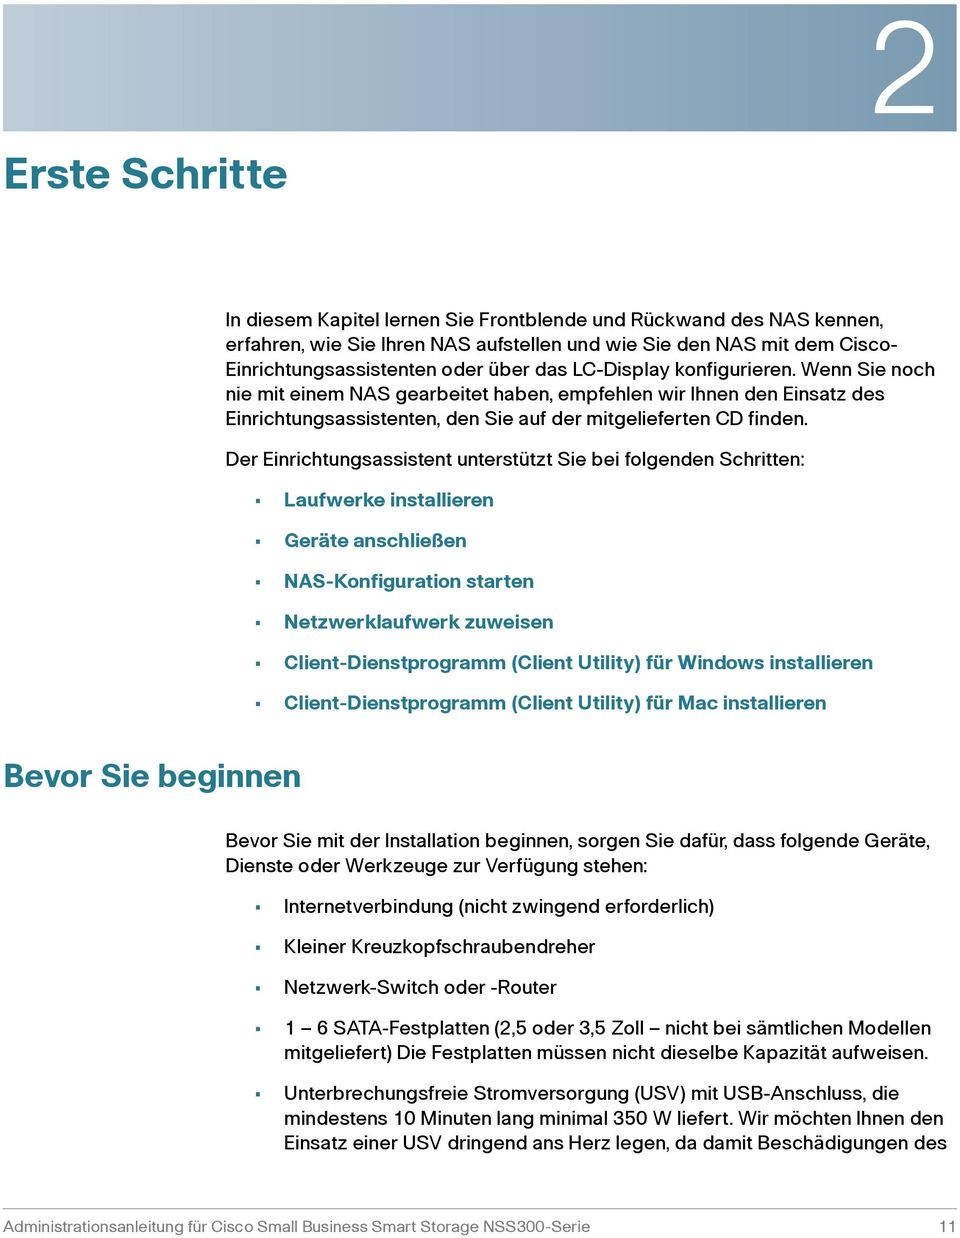 Nett Pl Sql Setzt Die Stichprobe Fort Bilder - Entry Level Resume ...